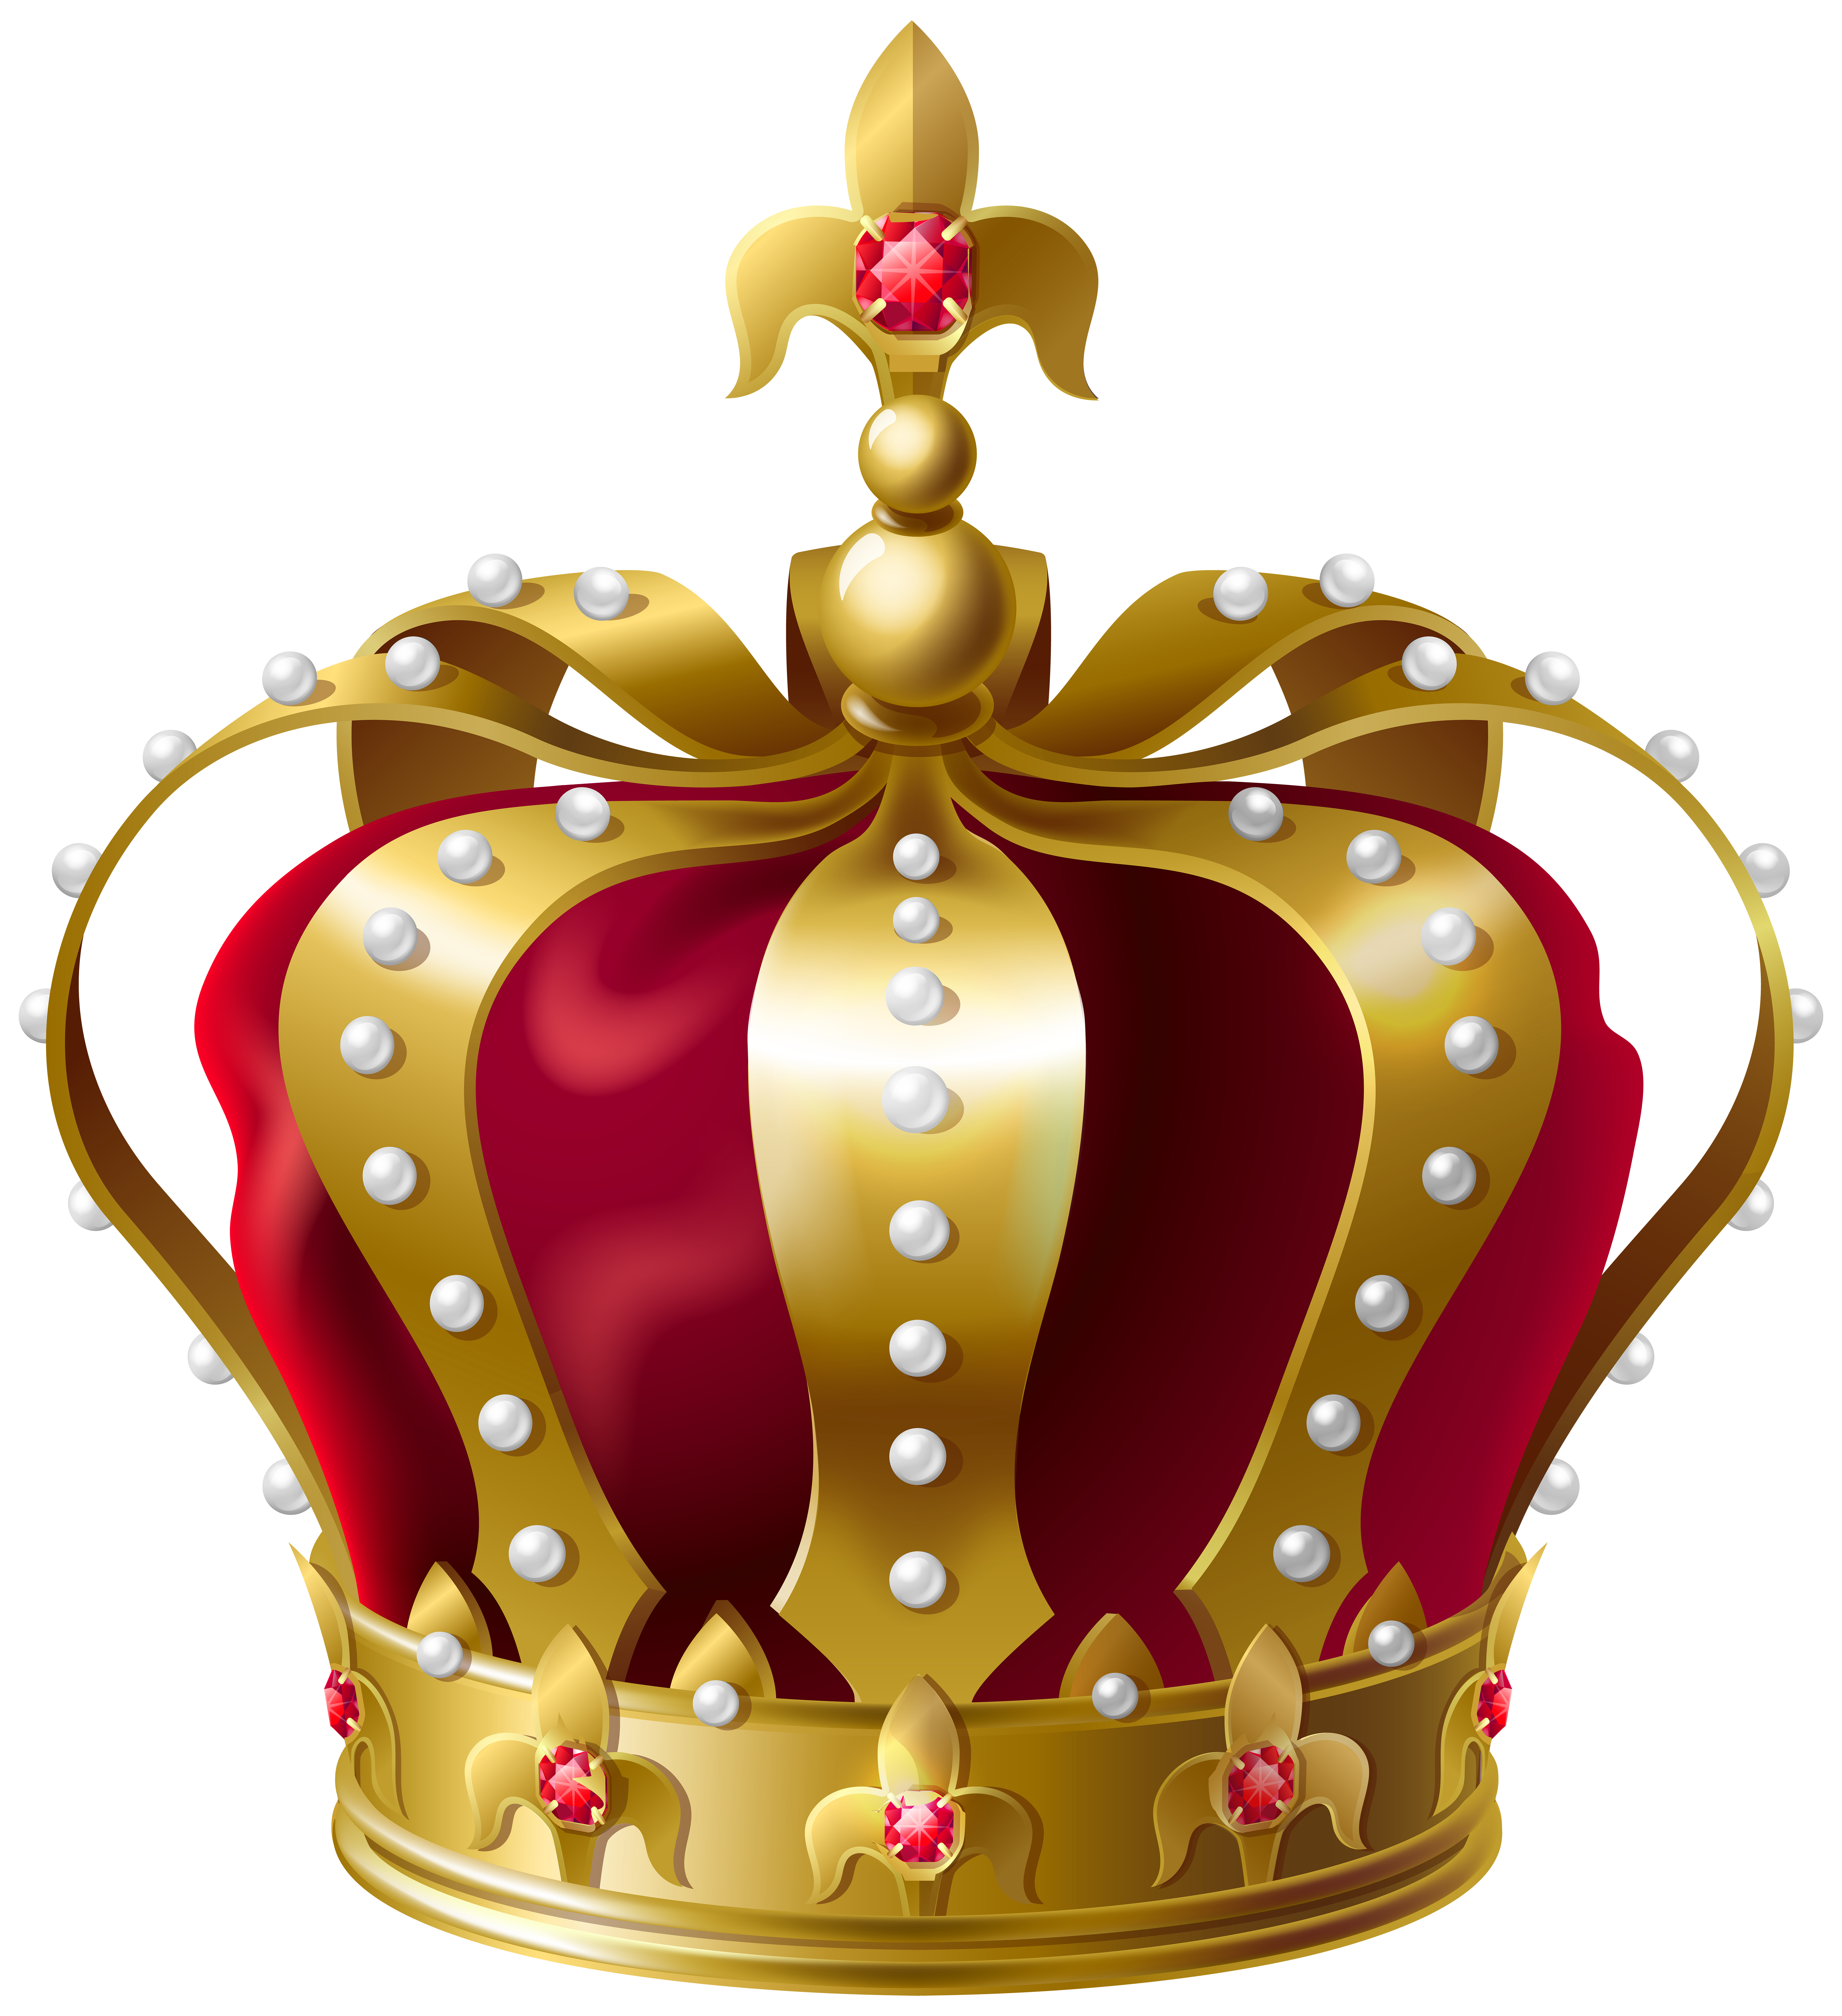 Clipart kings crown banner royalty free download King Crown Transparent PNG Clip Art Image | Gallery Yopriceville ... banner royalty free download